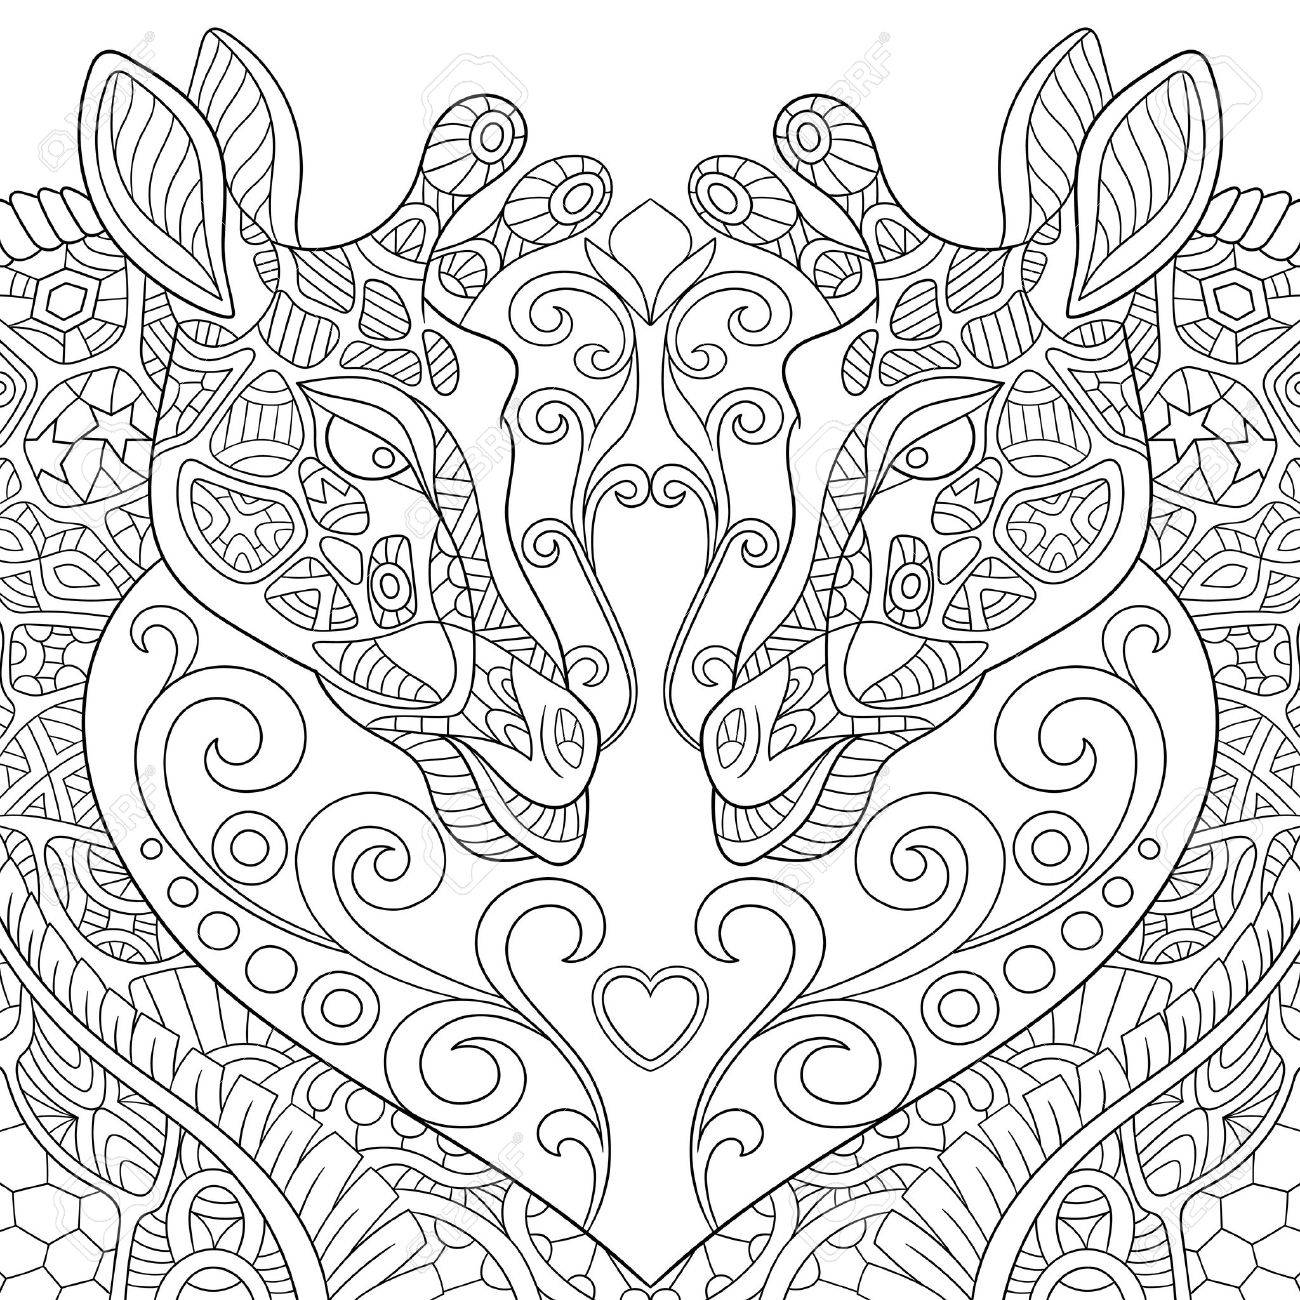 1300x1300 Stylized Two Cartoon Lovely Giraffes With A Heart. Sketch